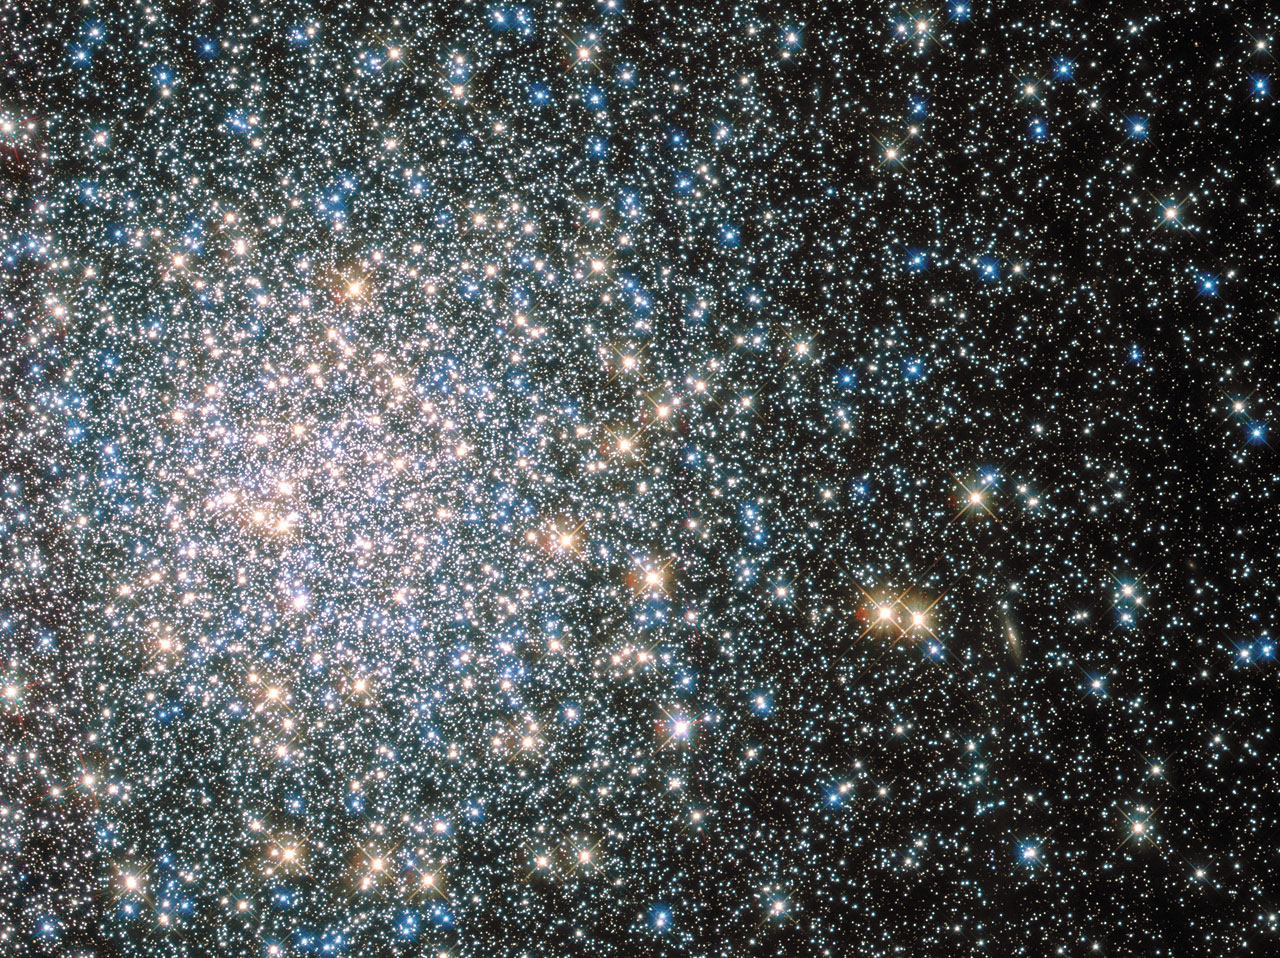 The globular cluster M5 as seen by Hubble Space Telescope - credit: ESA/Hubble & NASA